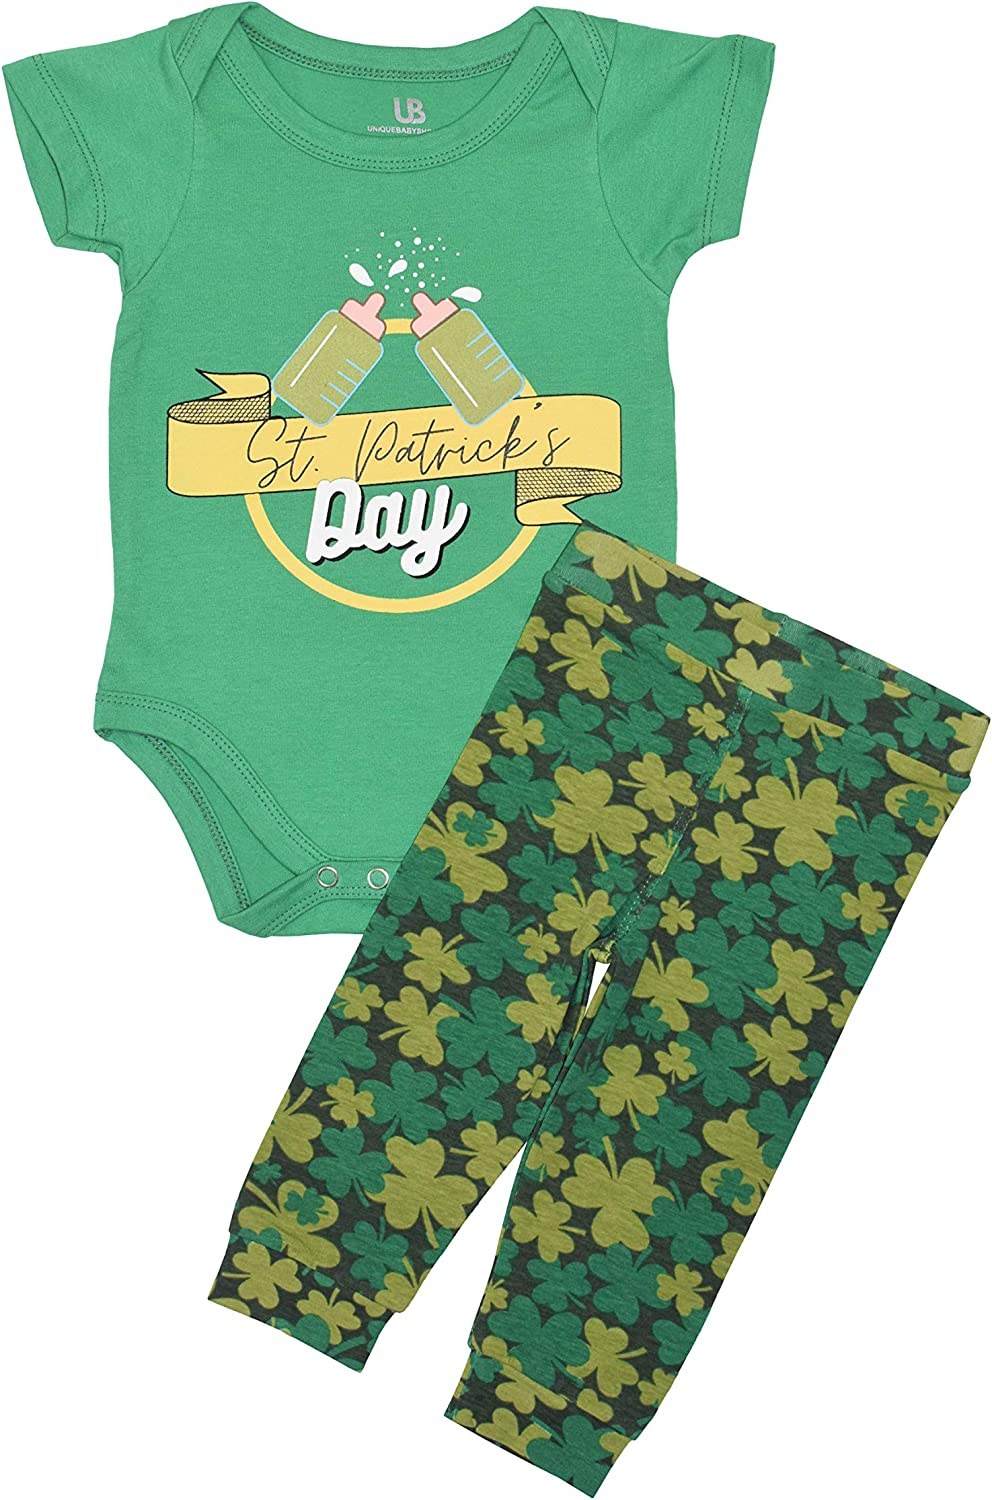 Unique Baby Unisex Cheers Bottles St Patrick's Day Onesie Outfit